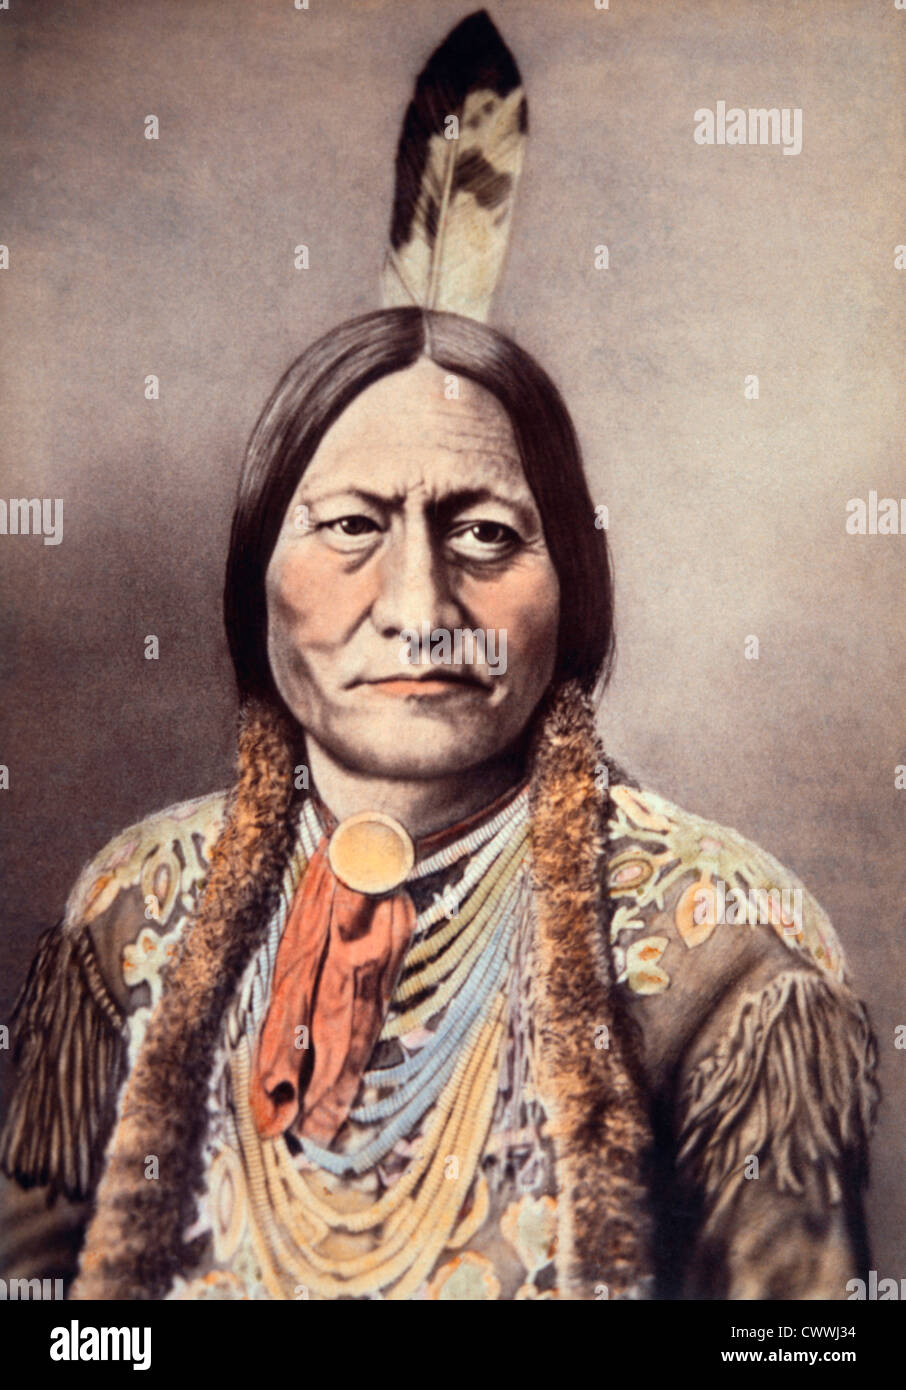 sitting bull and the sioux resistance essay Essay analysis: sitting bull and the sioux resistance the change in lakota culture during the nineteenth century is best time lined by stages in sitting bull's life at the time of his birth, early in the century, the lakota's had just become fully mounted on horses and began acquiring guns from tradesman.